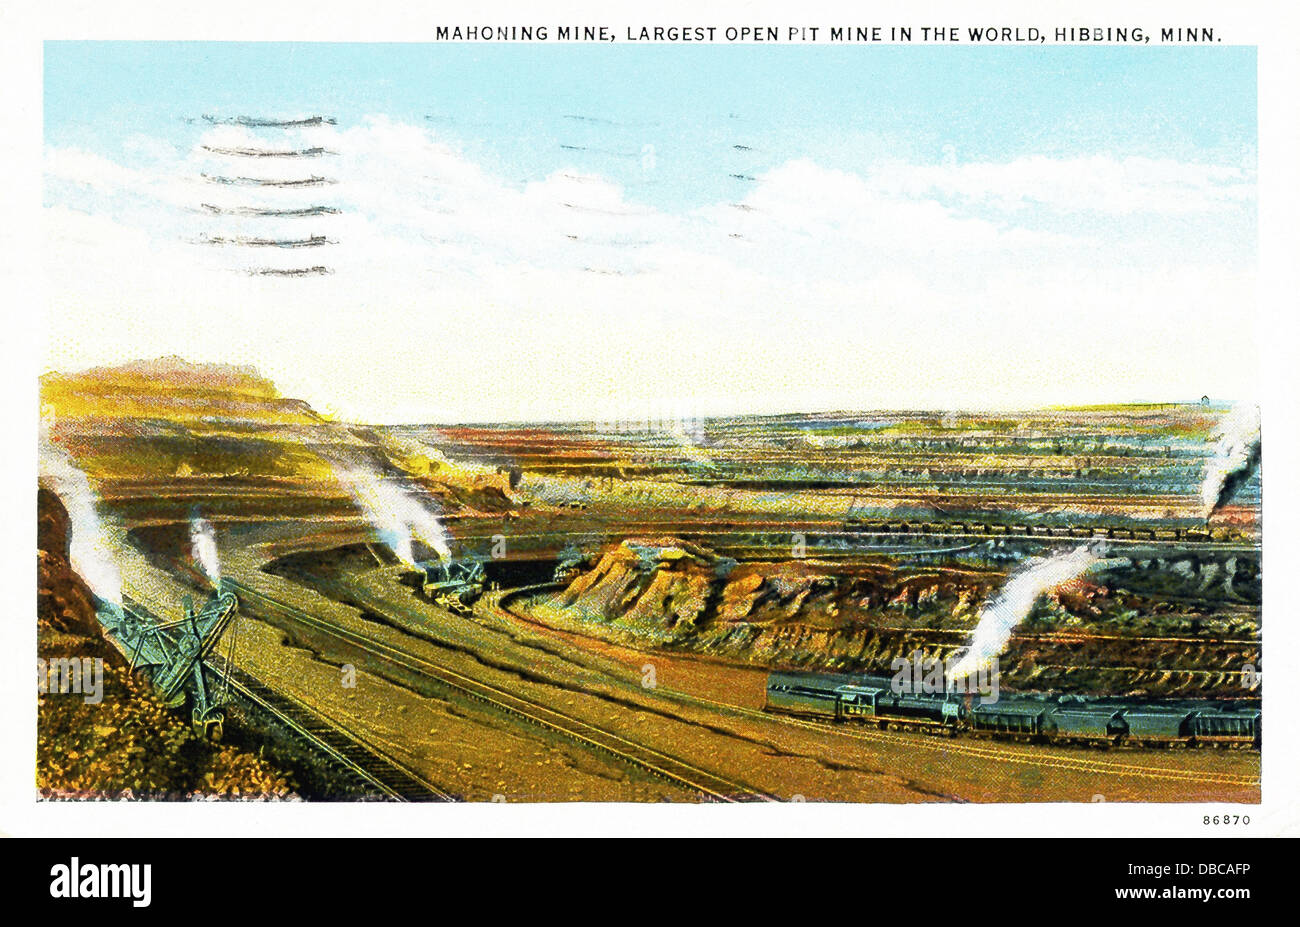 The Mahoning Mine, which in this 1940s postcard was billed as the Largest Open Pit Mine in the World, is in Hibbing, - Stock Image